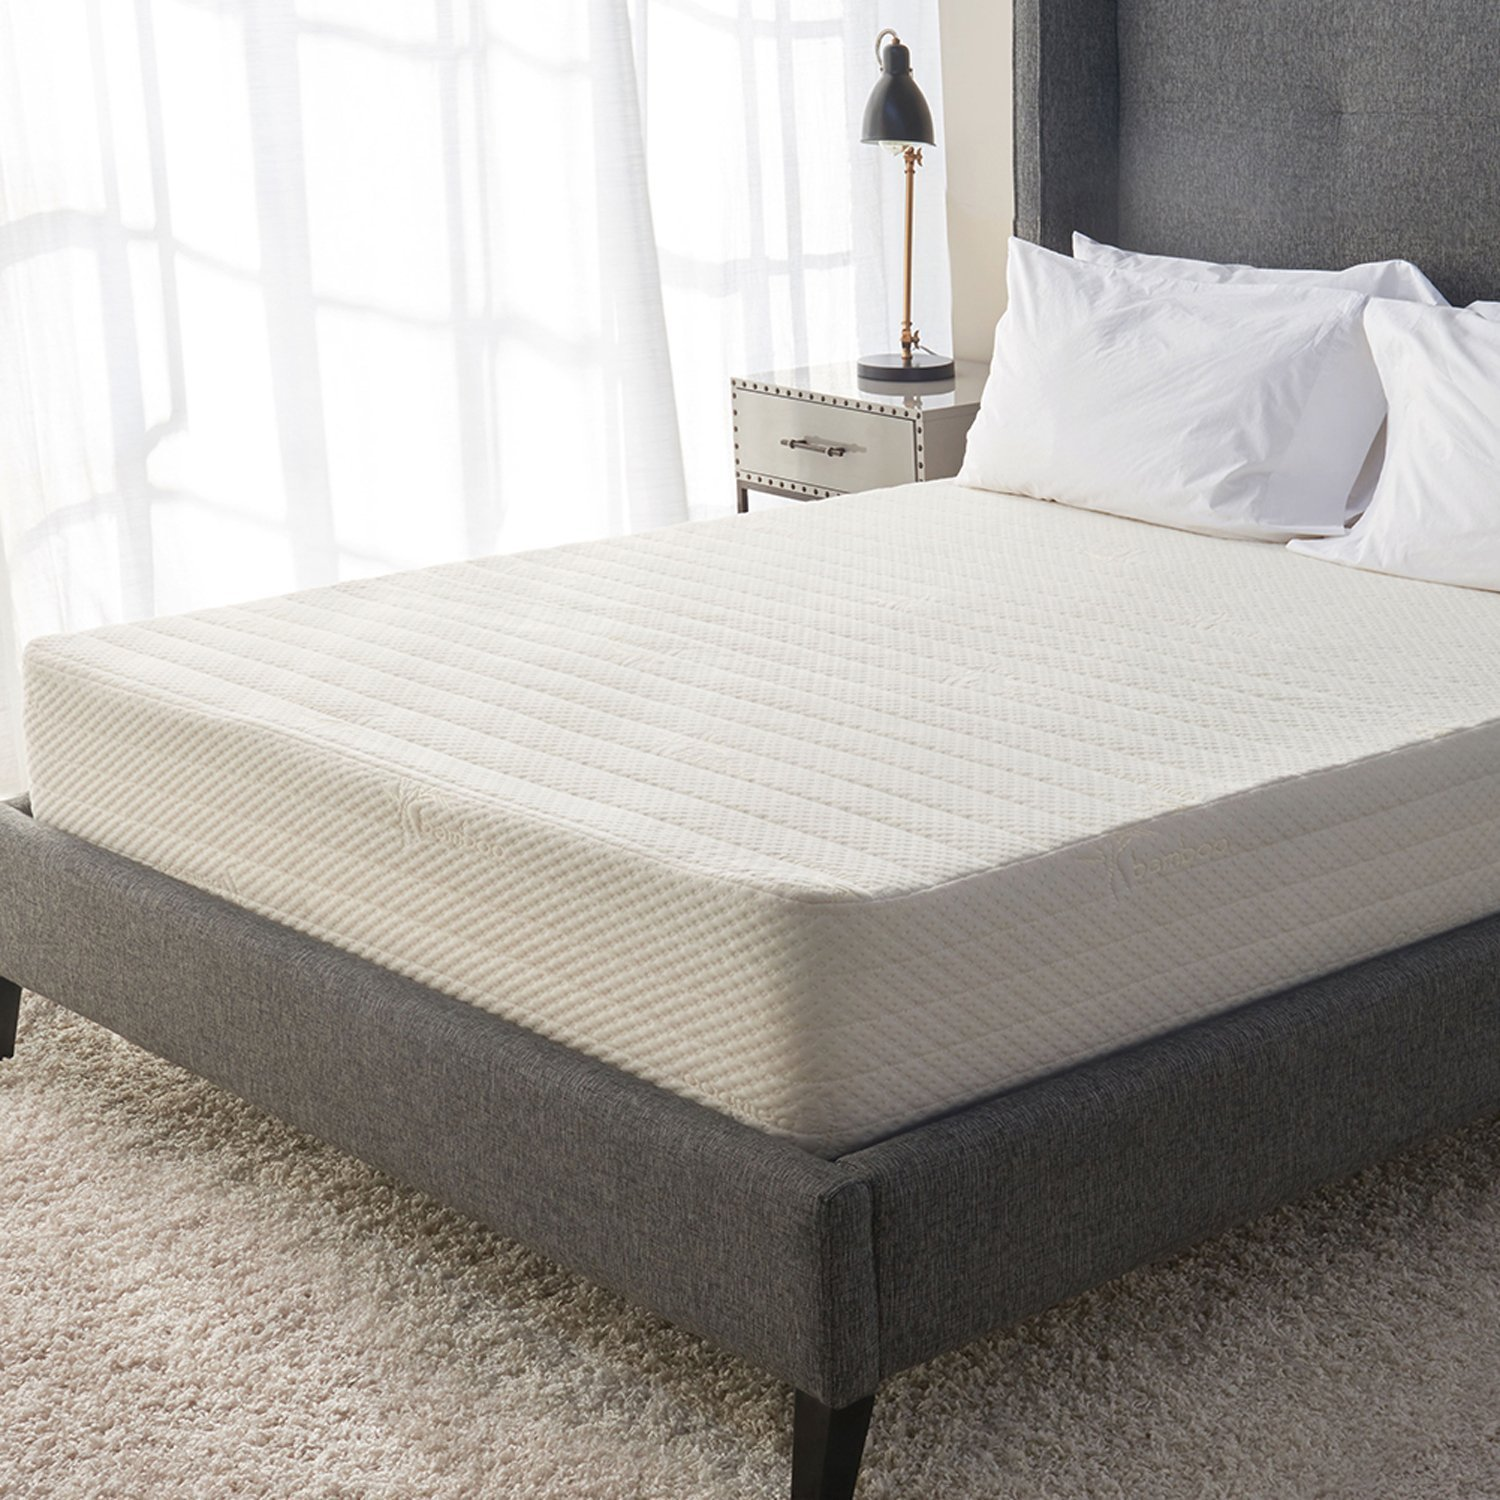 Best Mattress for Side Sleepers with Back pain - Bamboo Gel 11 Mattress by Brentwood Home